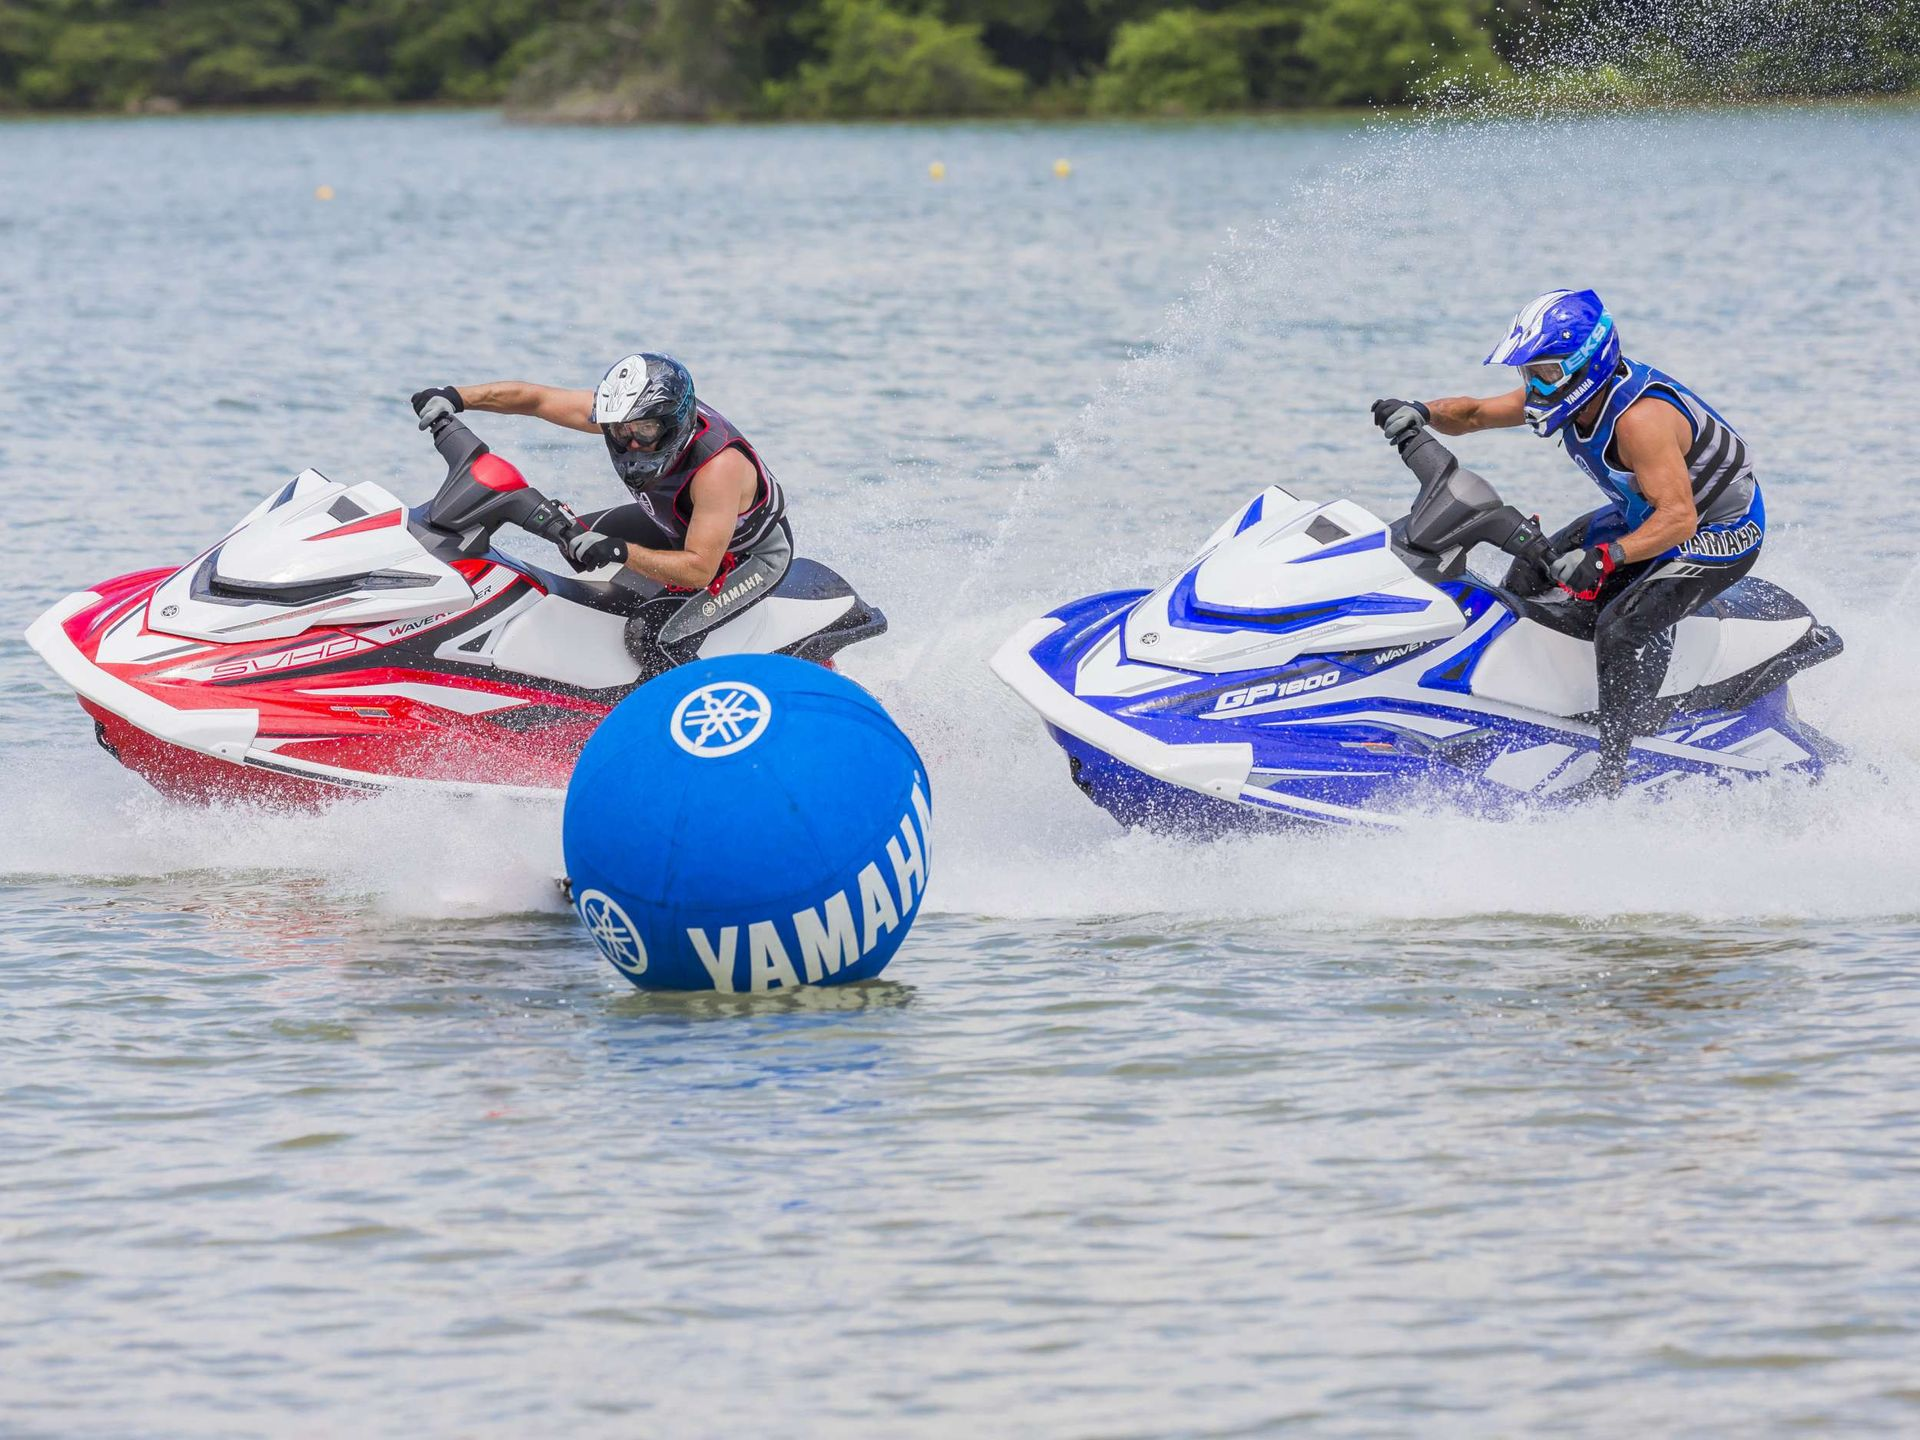 Yamaha Waterscooters Sport GP1800